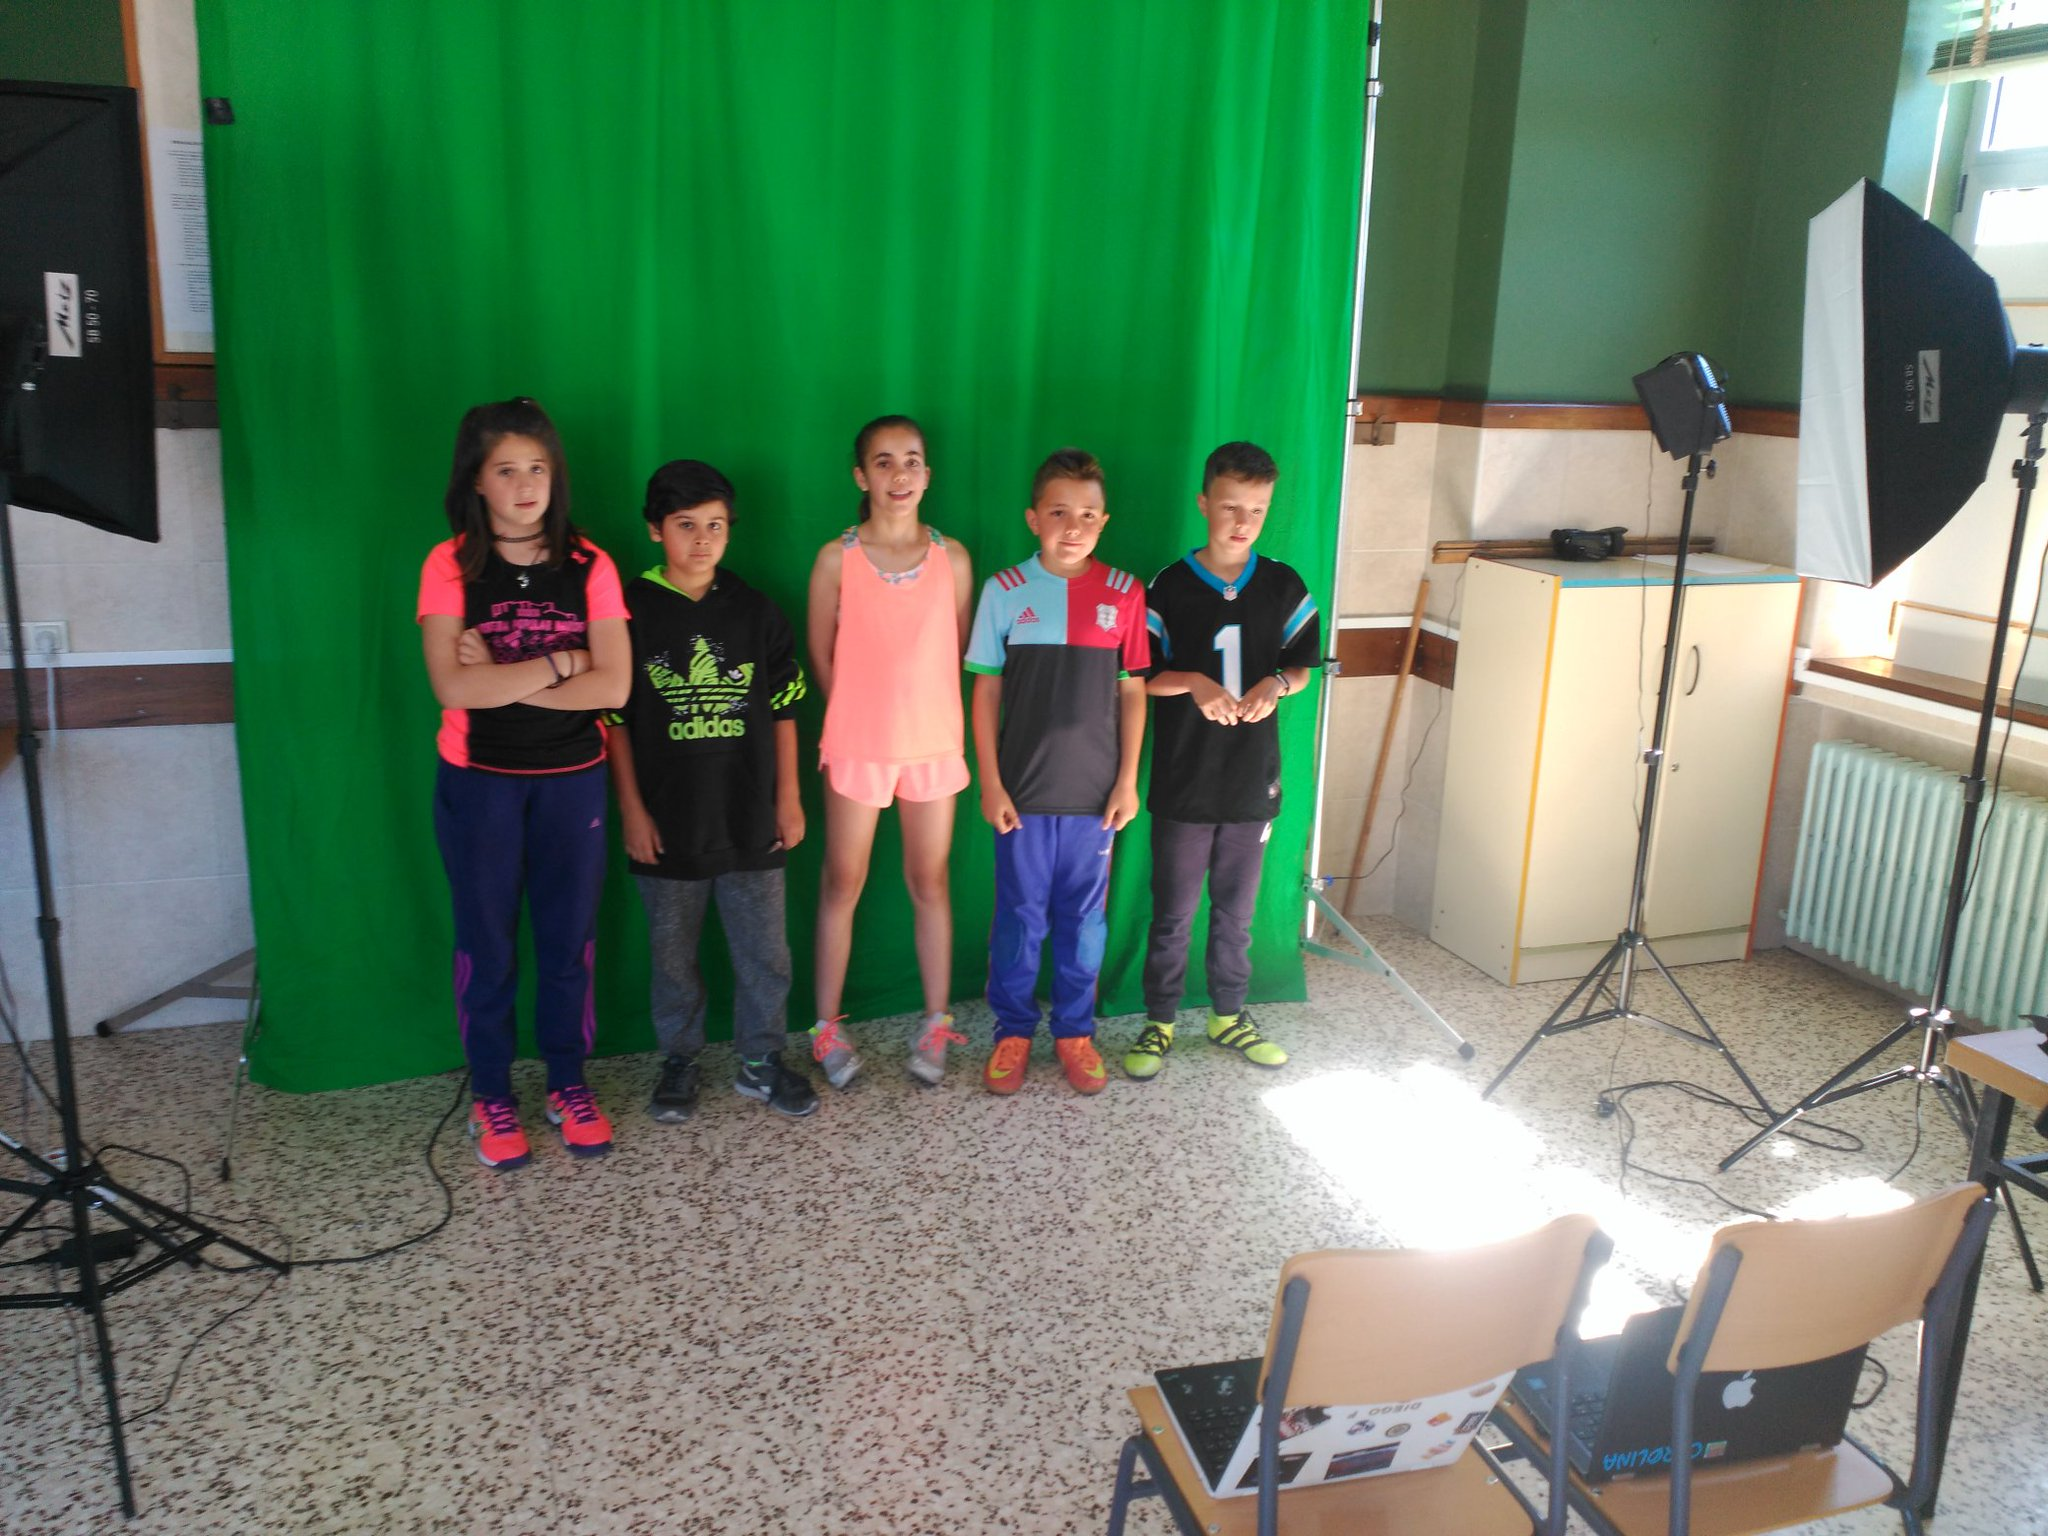 Working with the #Chroma during the exchange at @colsangregorio with @HTPDSchool  for our #etwinning project. Reporting news #etwinning_cyl https://t.co/jqYhy1YvTf